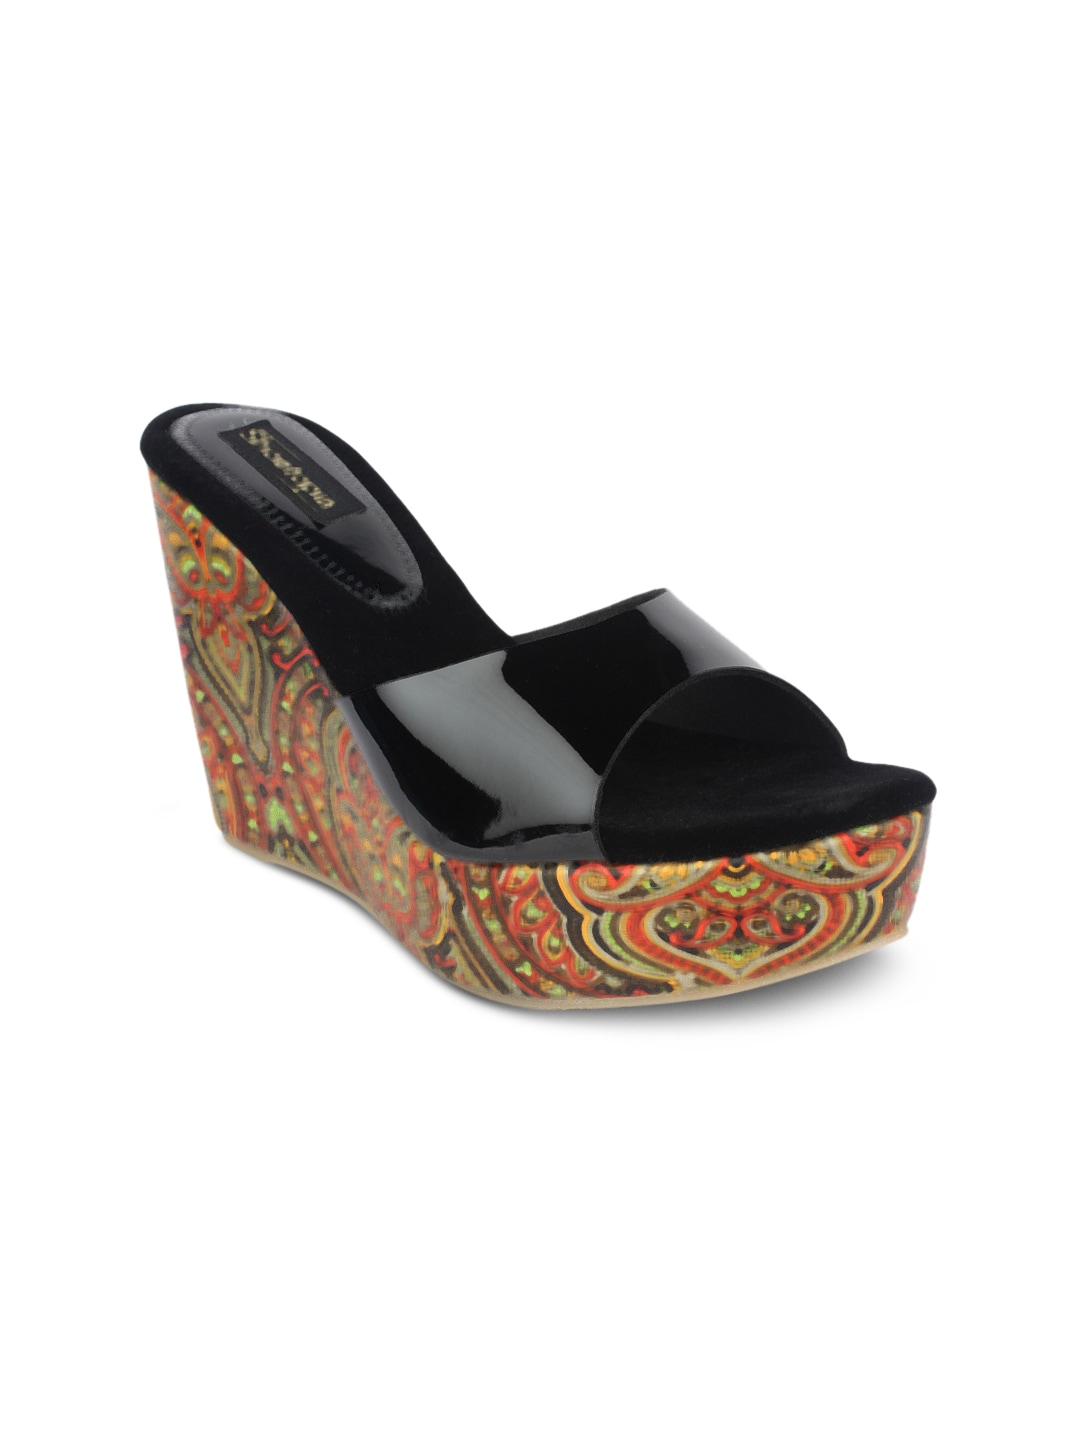 9aa95db62235 Womens Wedges - Buy Wedges for Women Online at Best Price